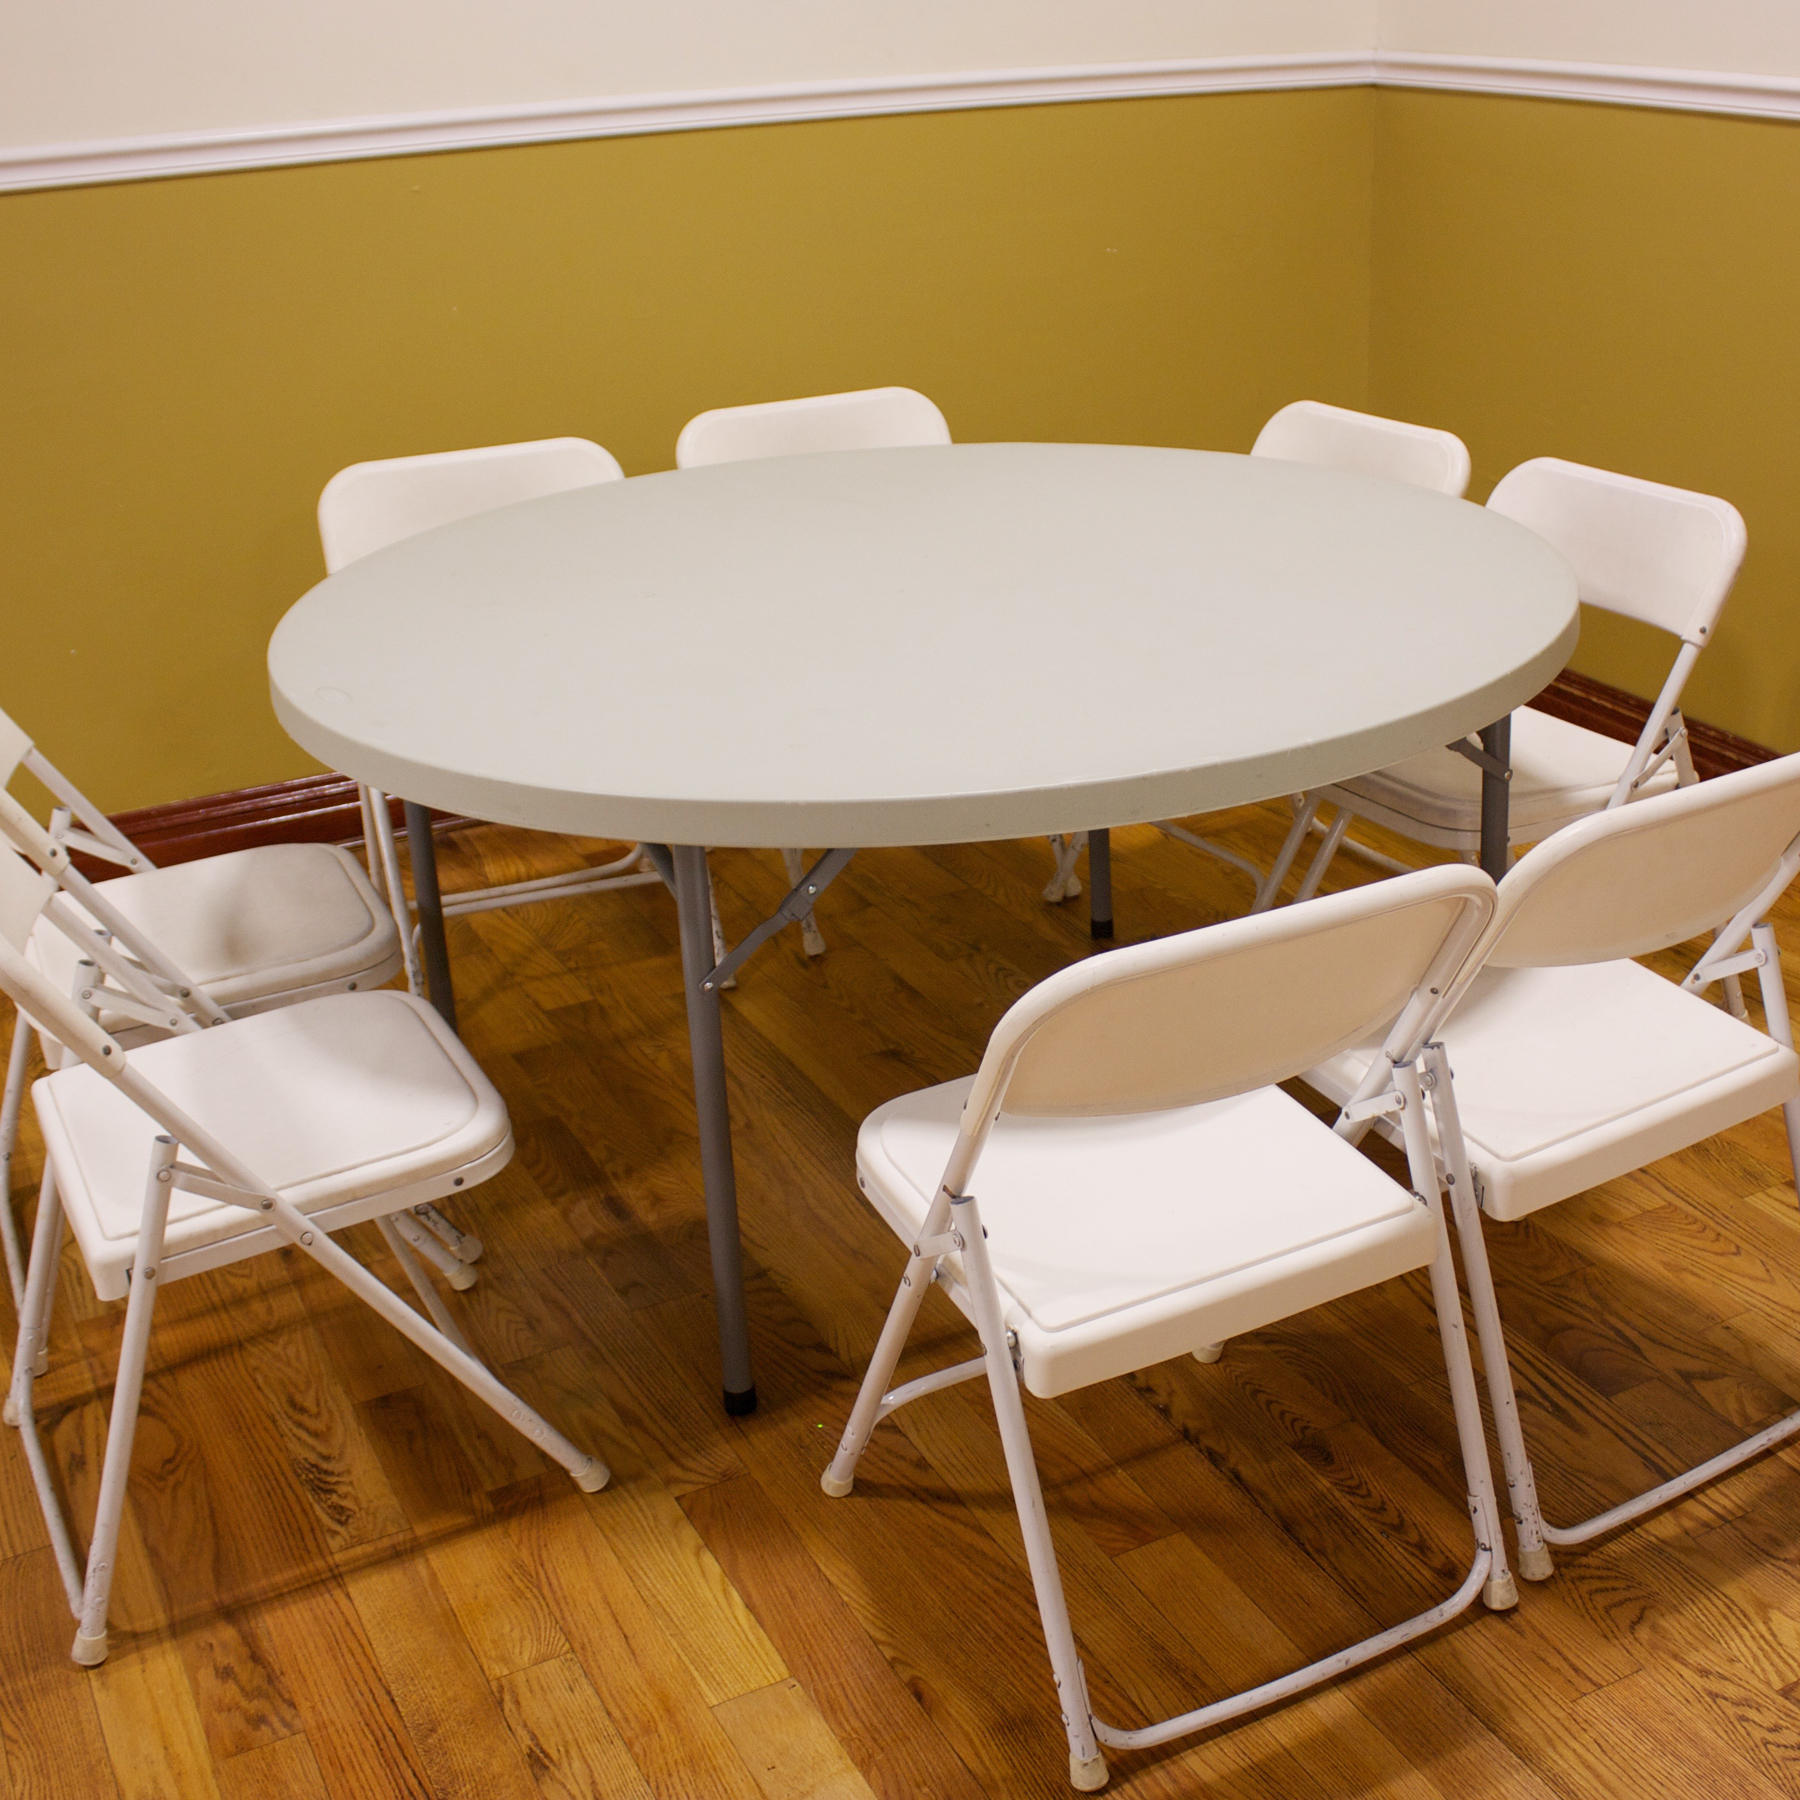 48″ Round Tables seats 8